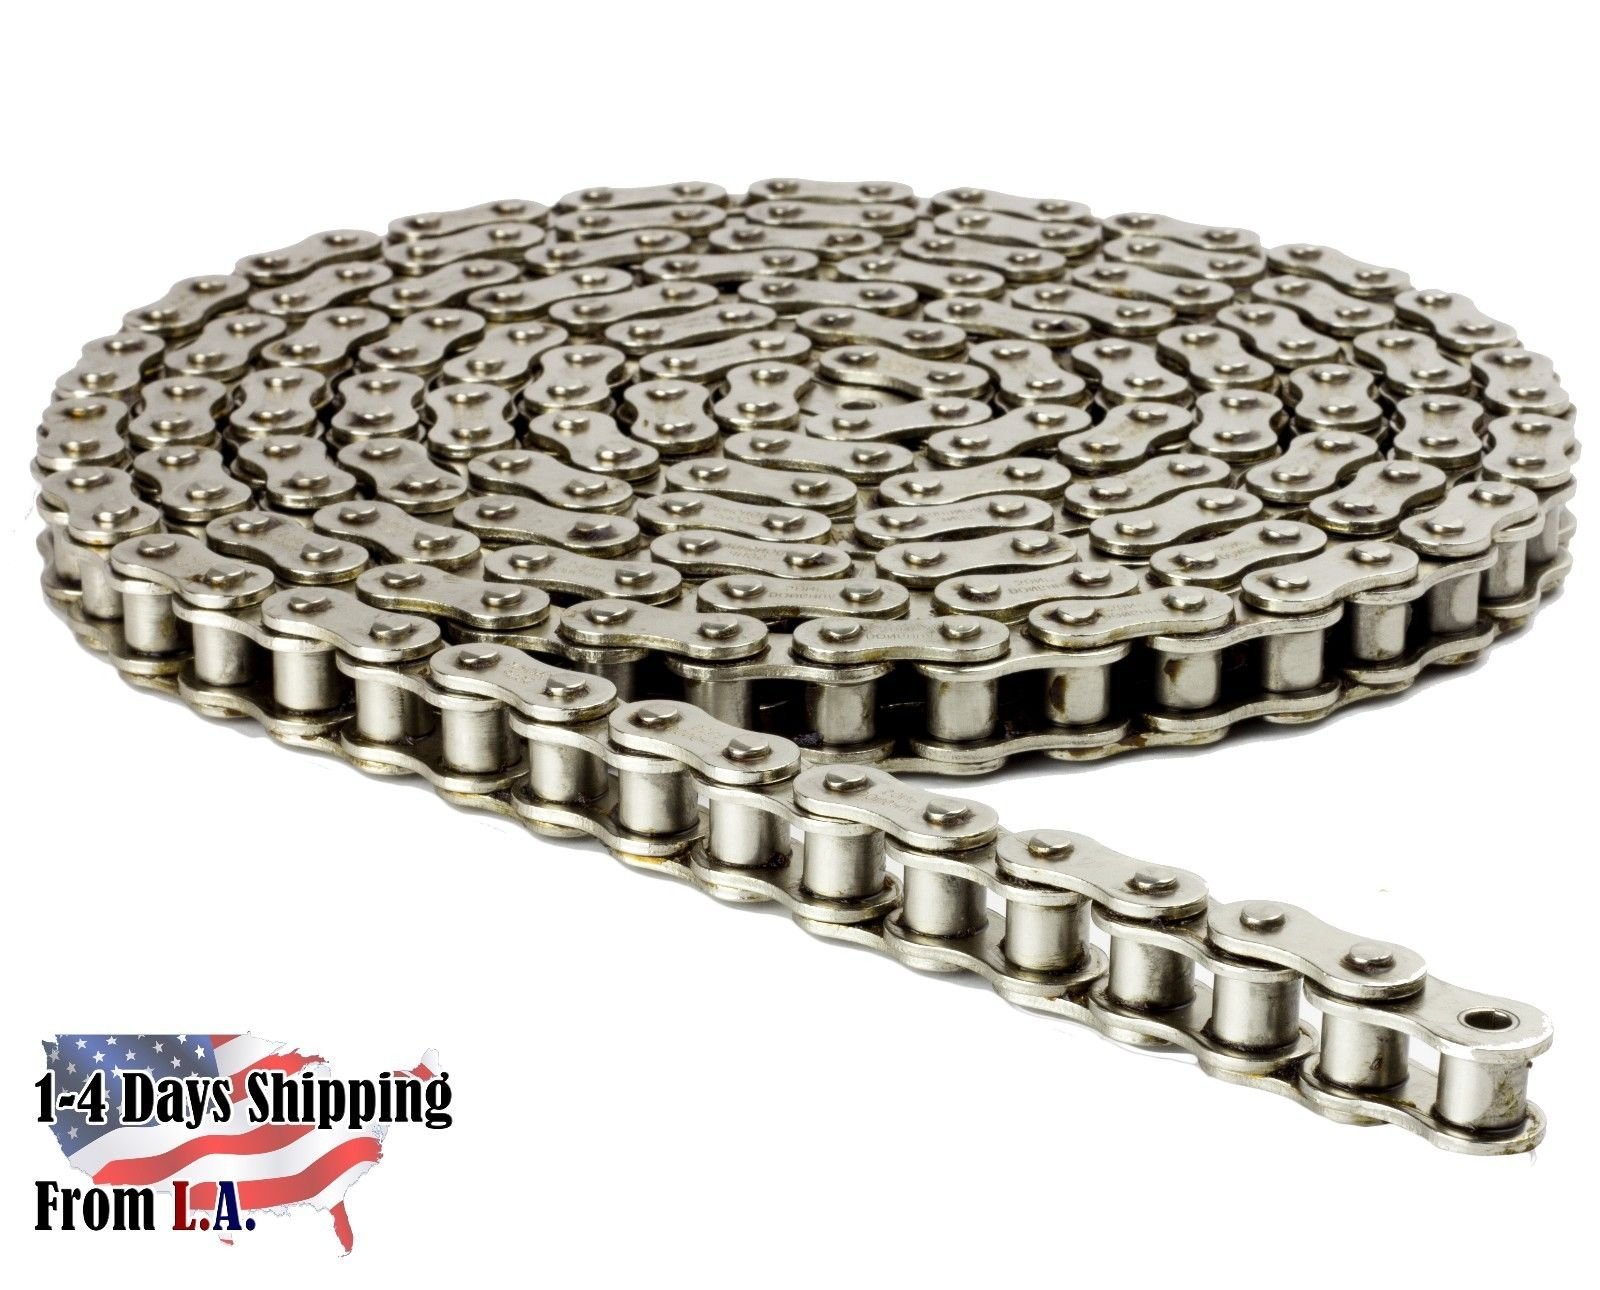 41NP Nickel Plated Chain 4 Feet with 1 Connecting Link Corrosion Resistant